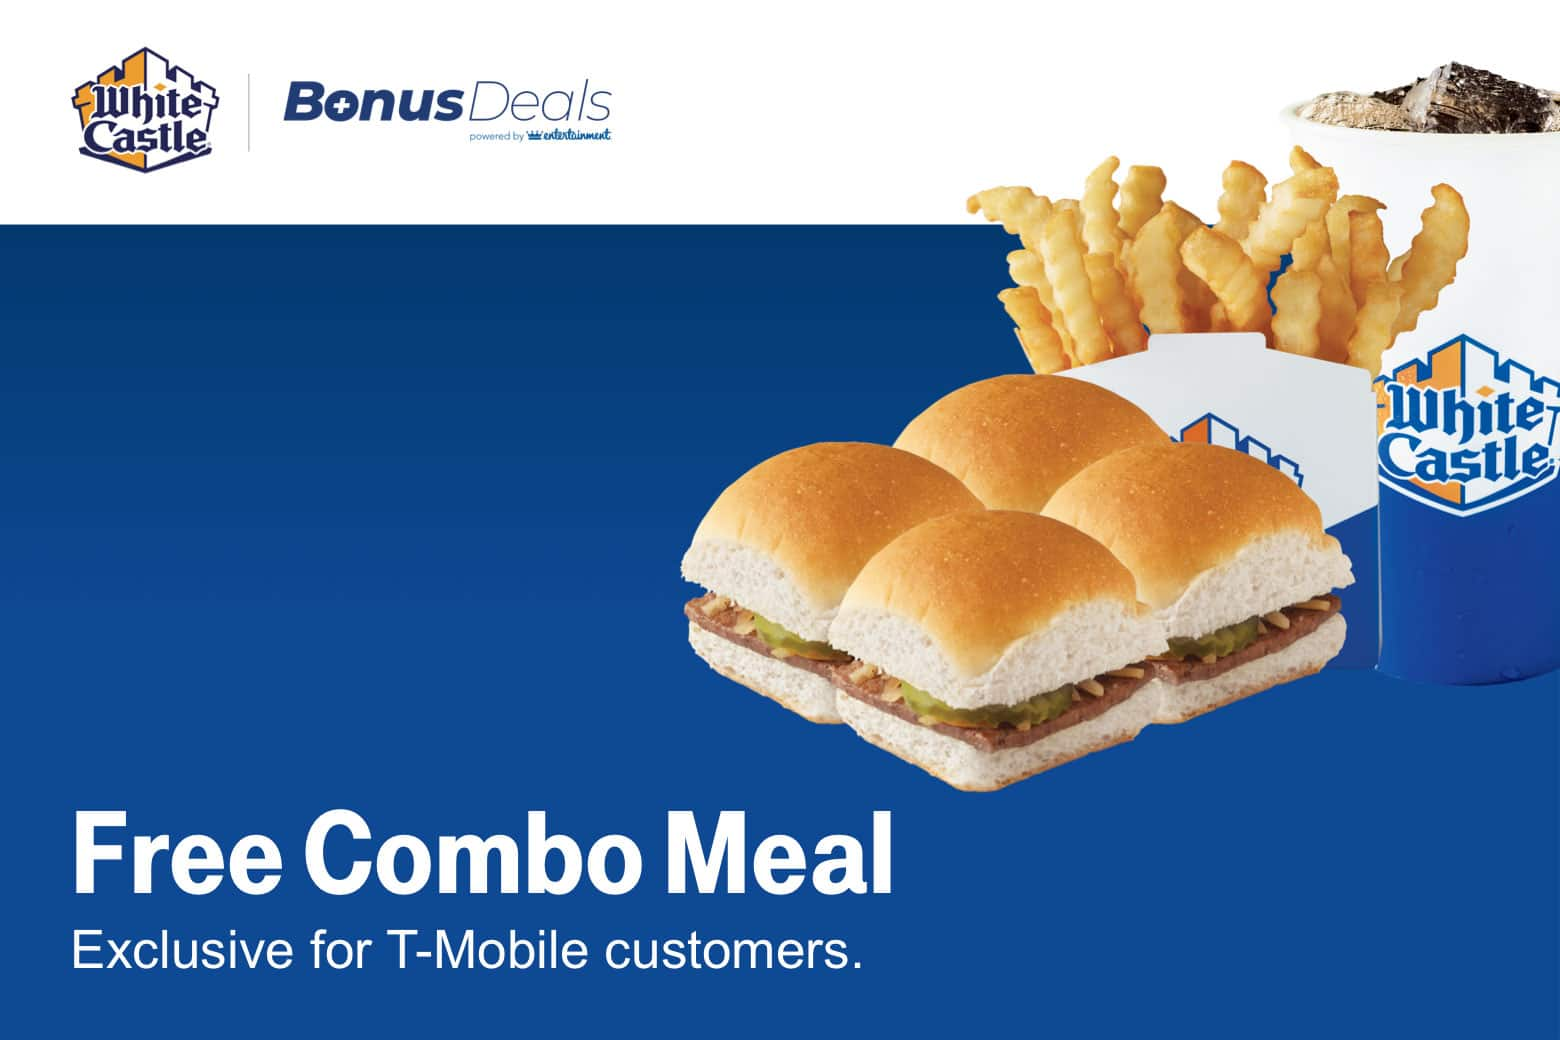 T-Mobile Customers (12/11): Free Combo Meal White Castle